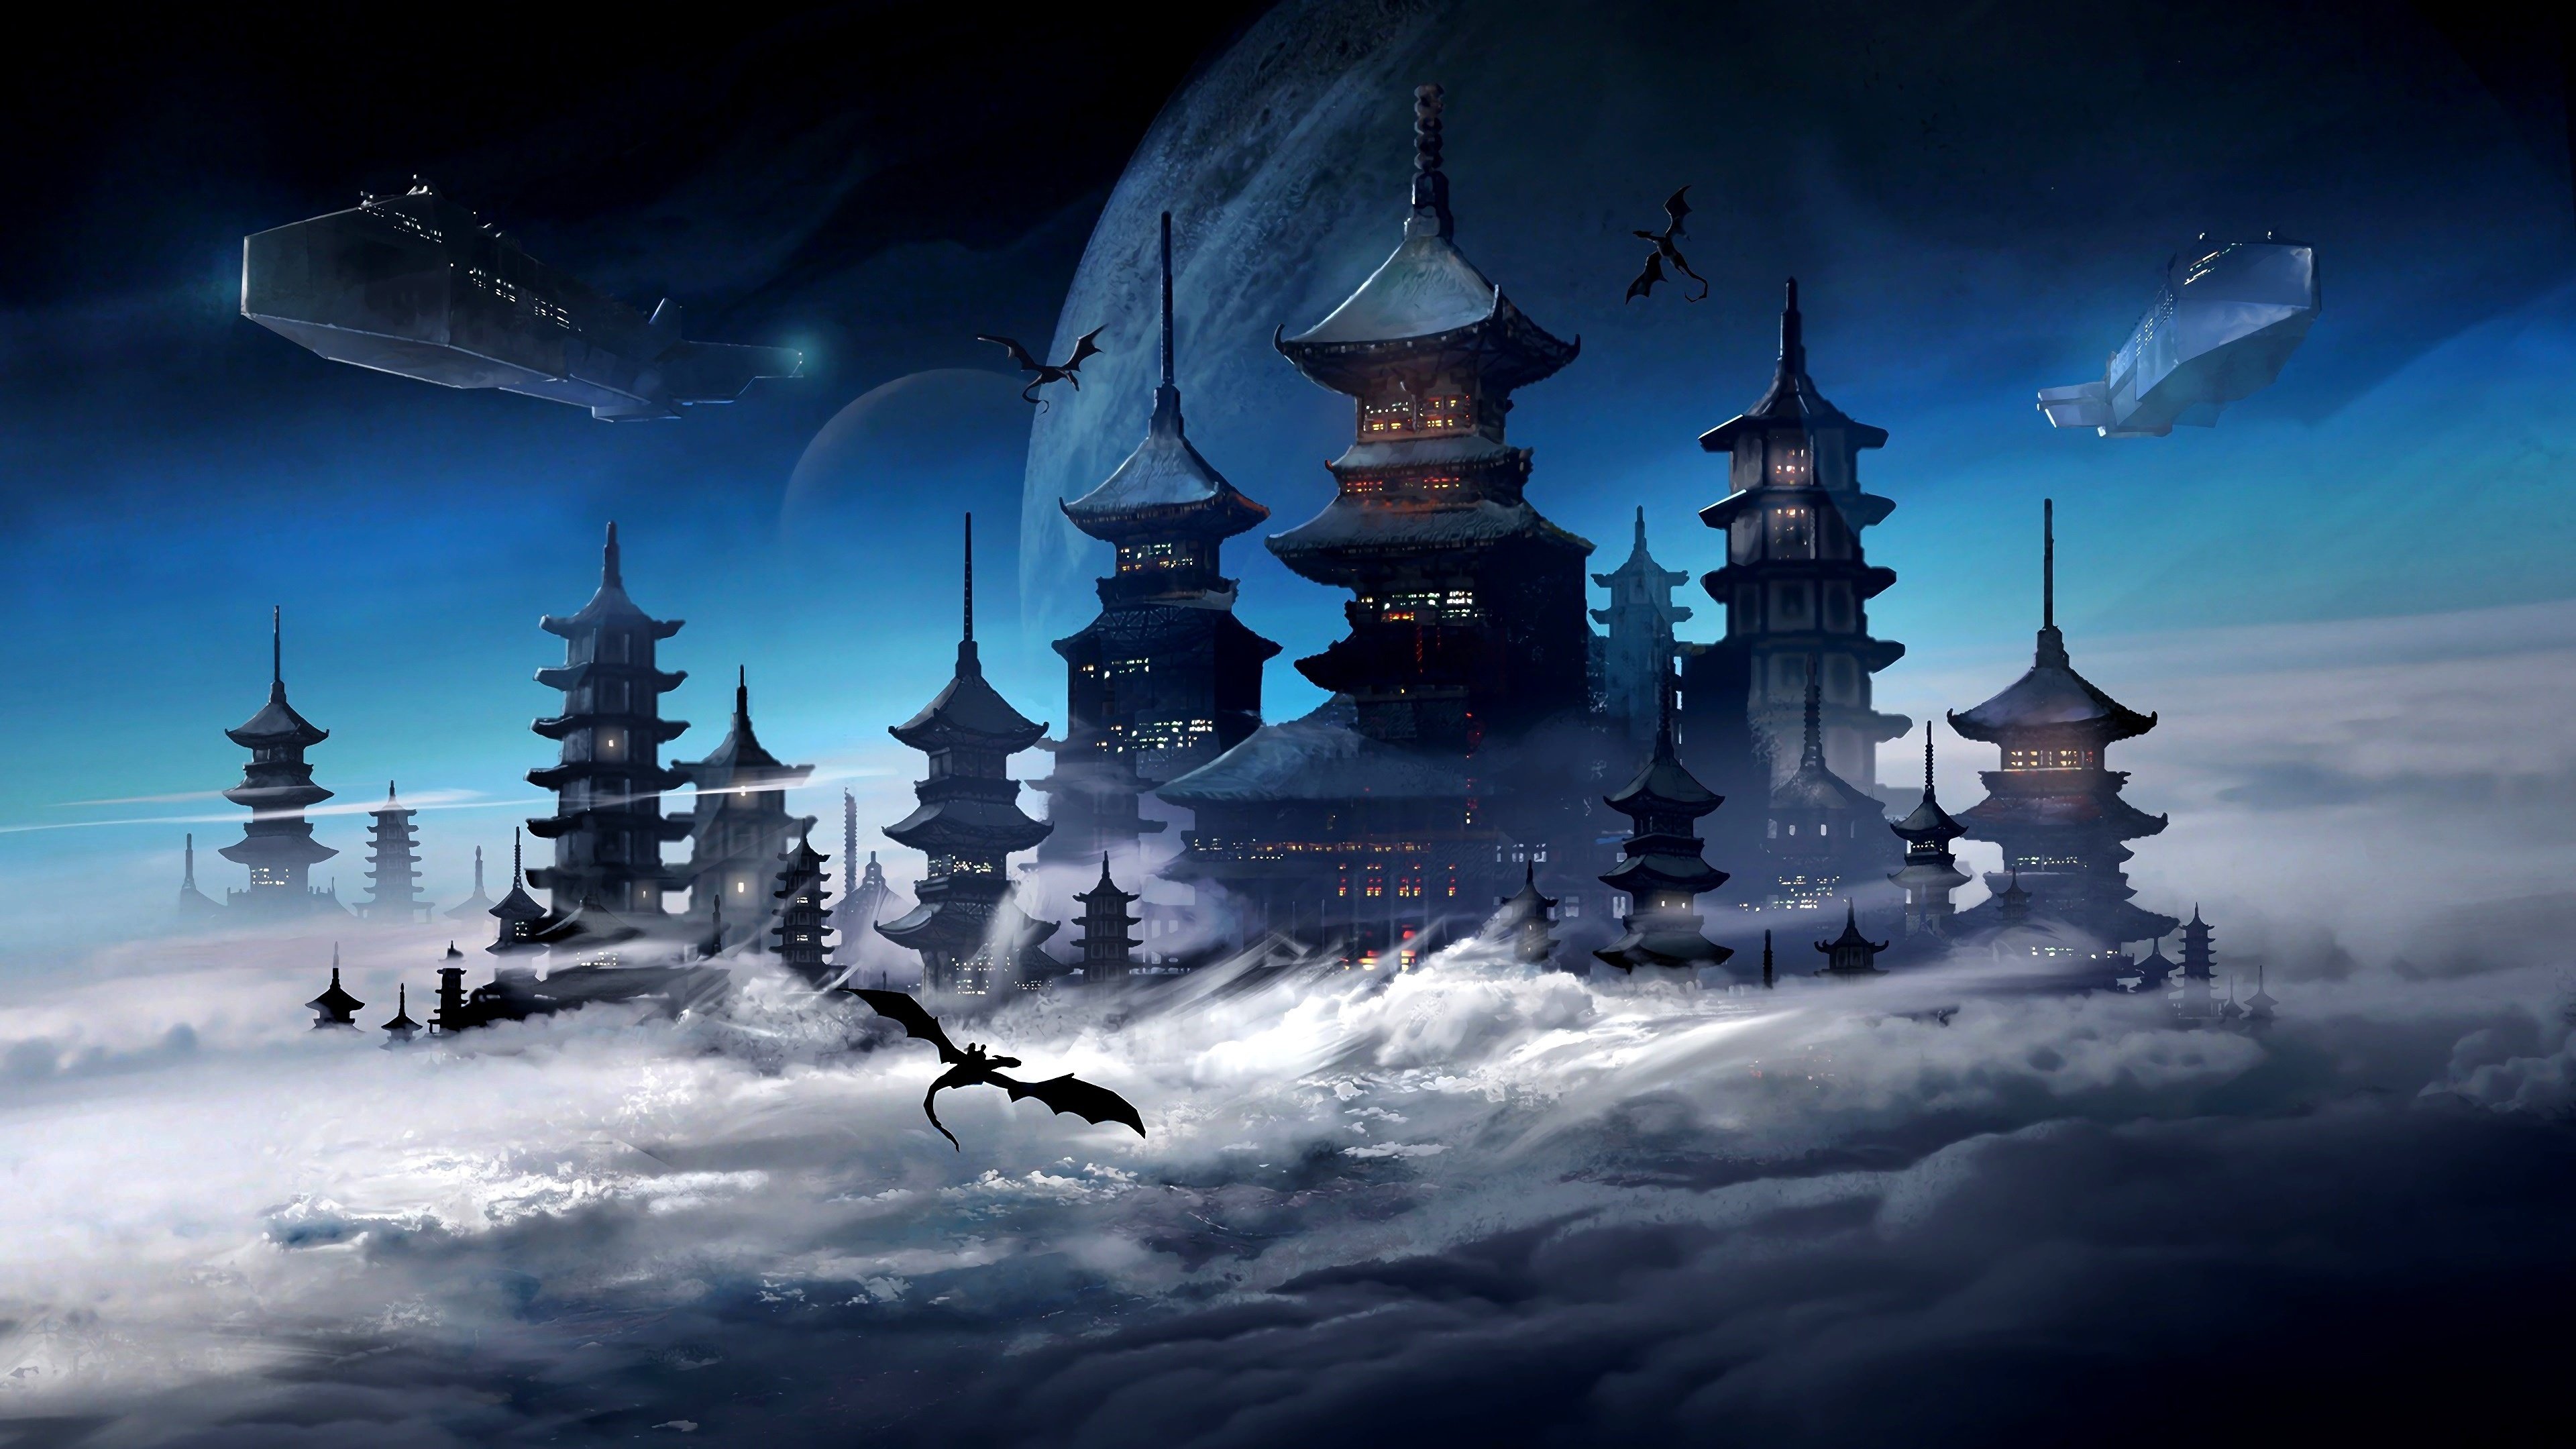 Japanese castle above the clouds wallpaper